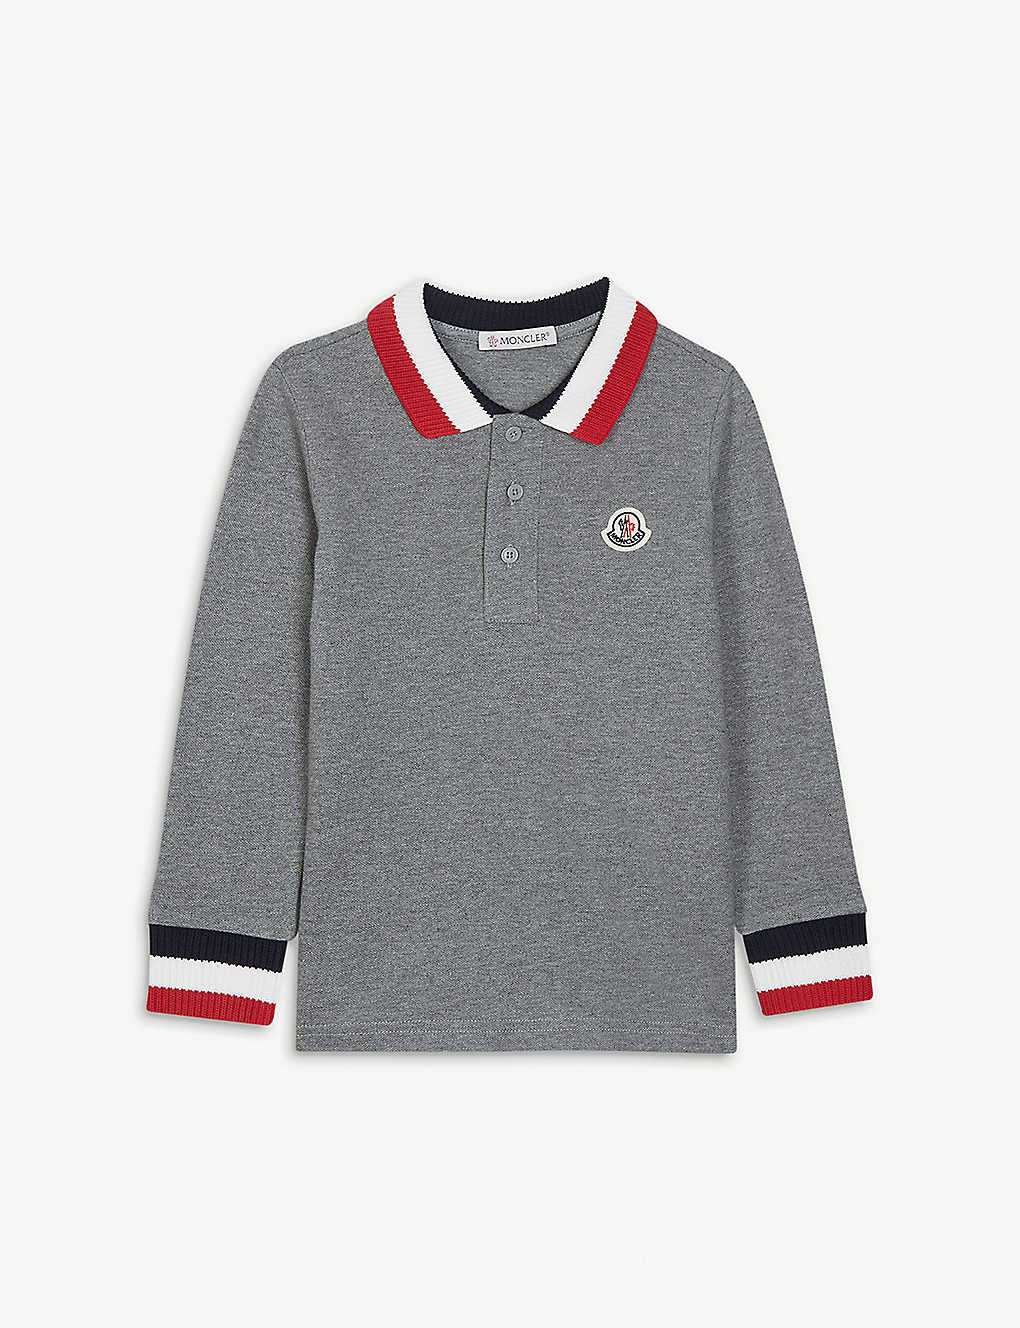 MONCLER: Knitted collar long-sleeved cotton polo top 4-14 years